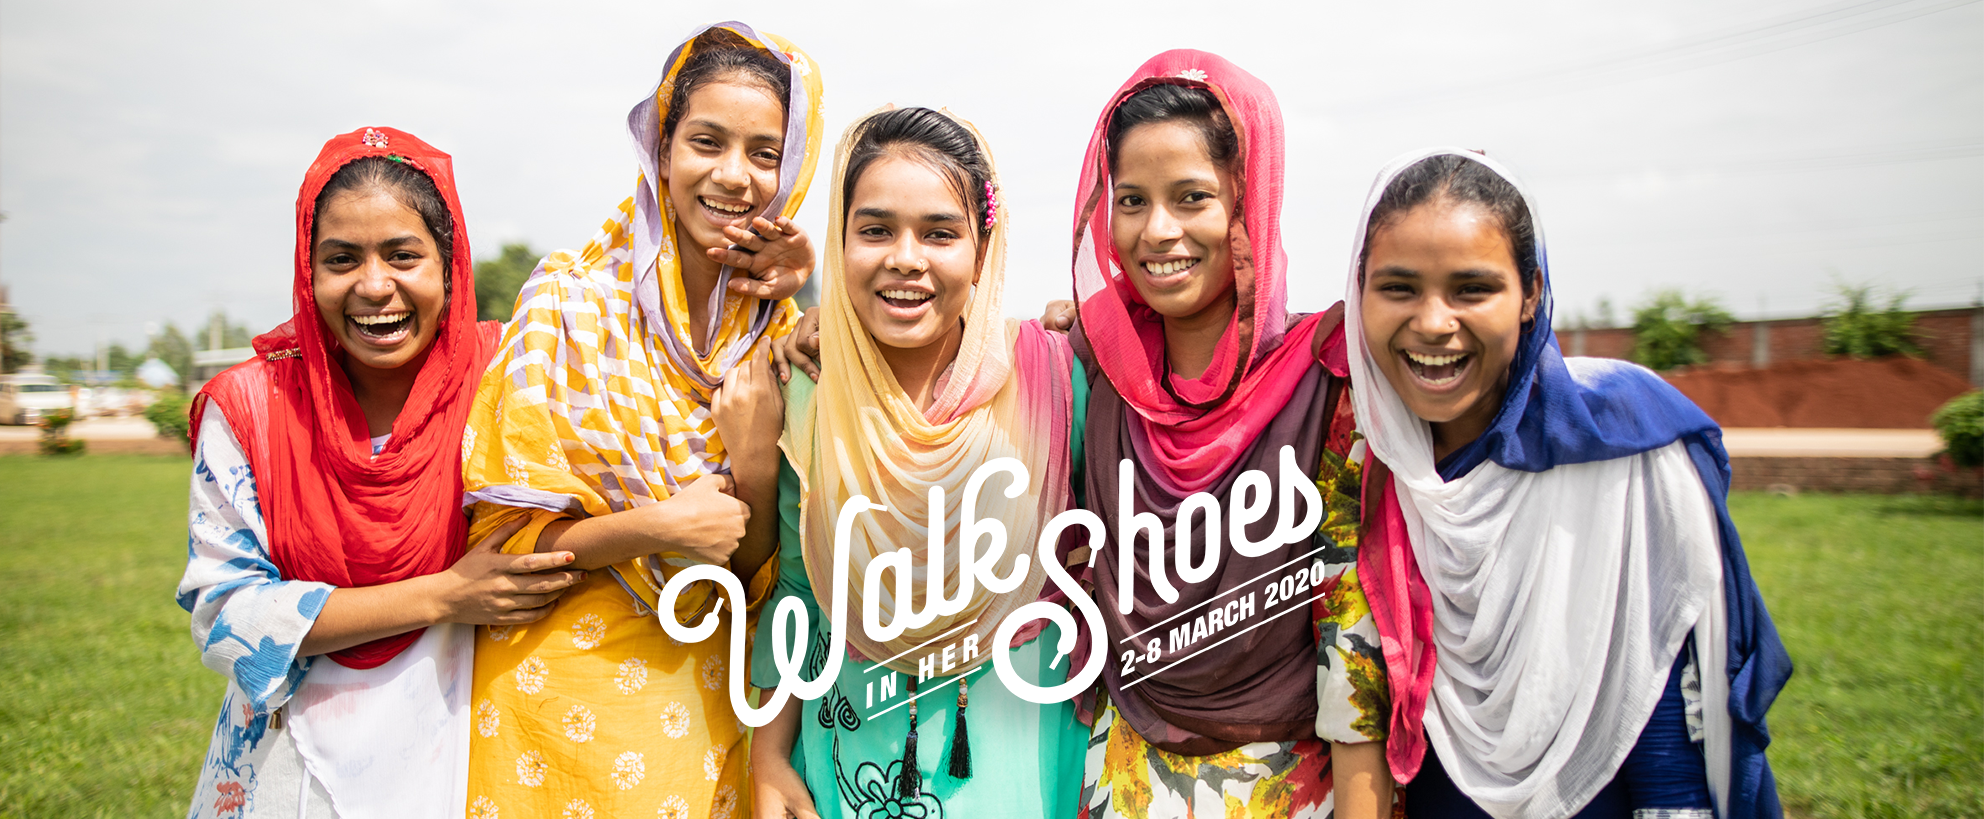 Walk in her Shoes logo. Image of girls laughing.